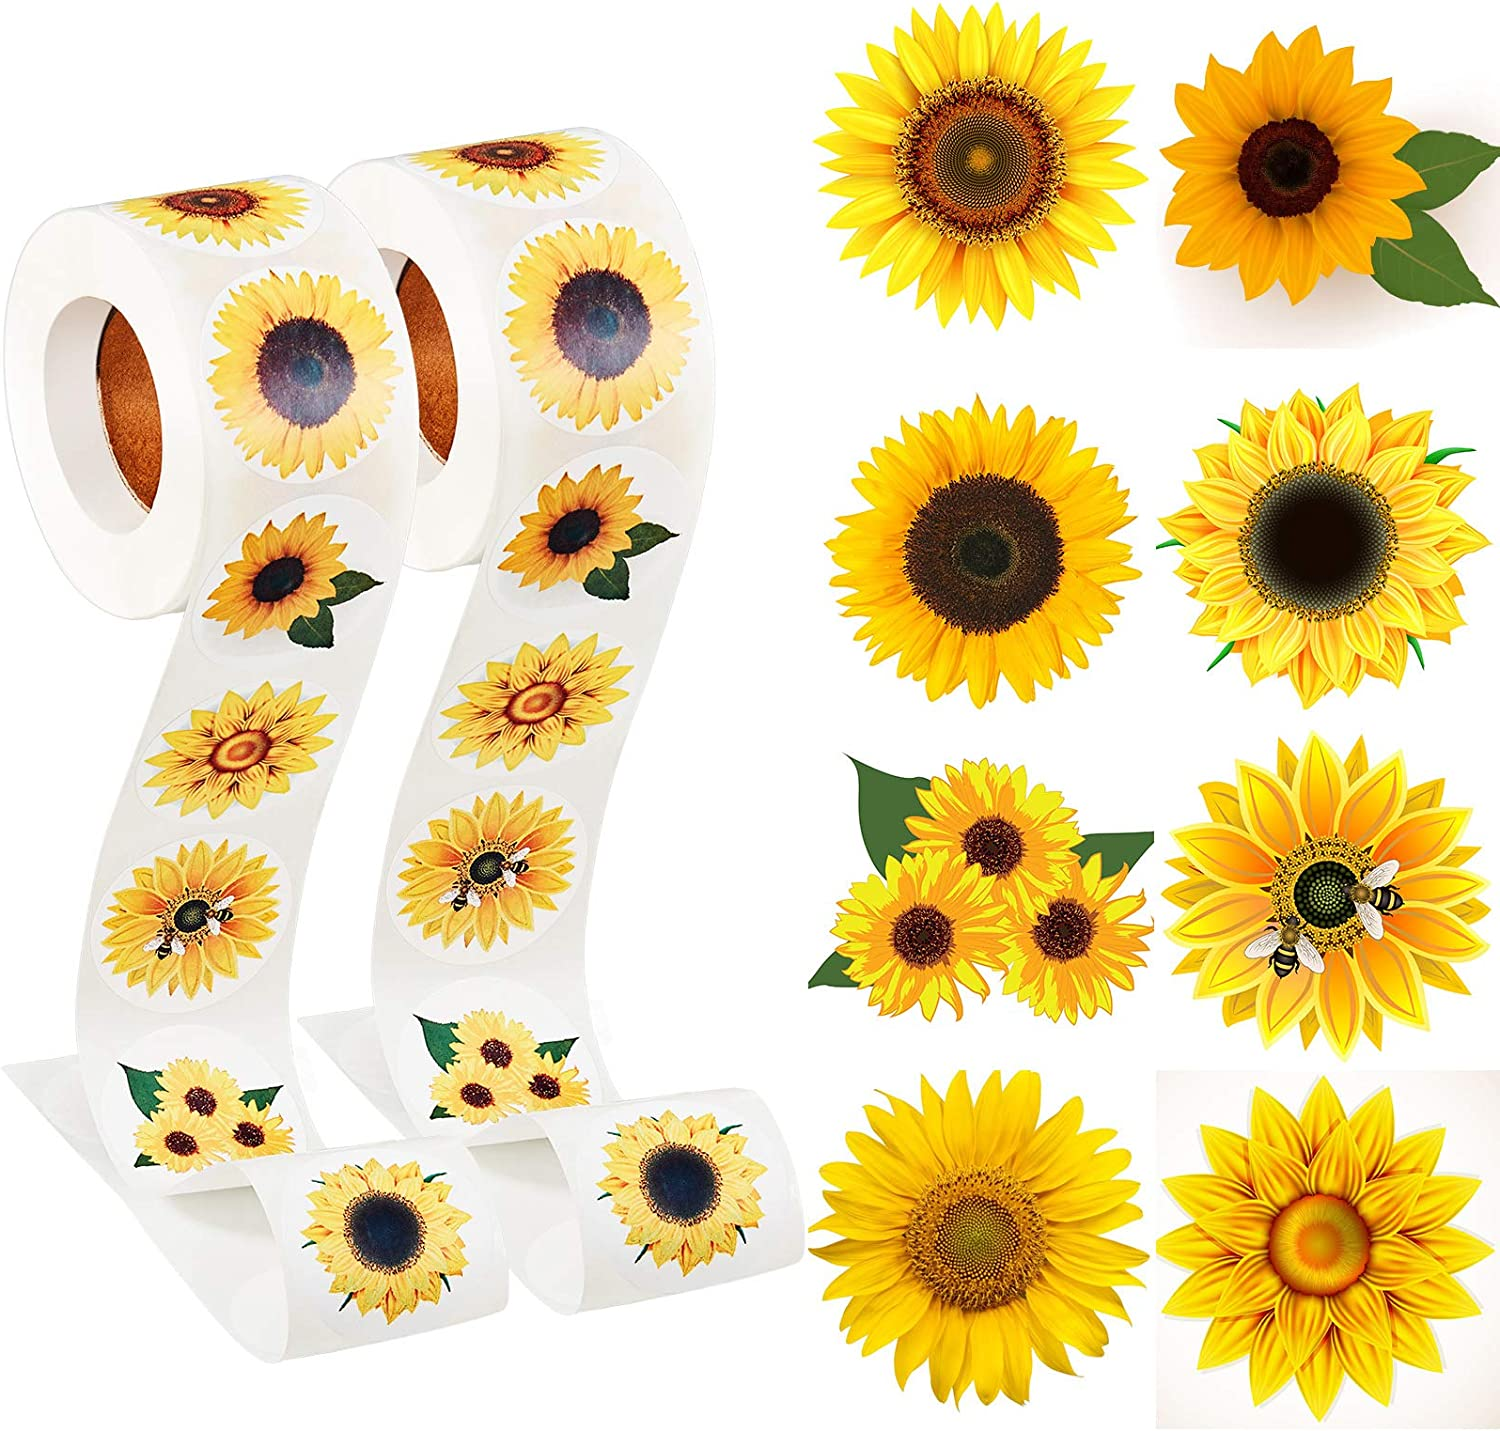 Sunflower Stickers, 1.5 Inch Sunflower Labels with 8 Sunflower Patterns Sunflower Stickers Rolls Self Adhesive Seals for Christmas Thanksgiving Party Decor Scrapbooking Cards Envelopes (1000 Pieces): Kitchen & Dining